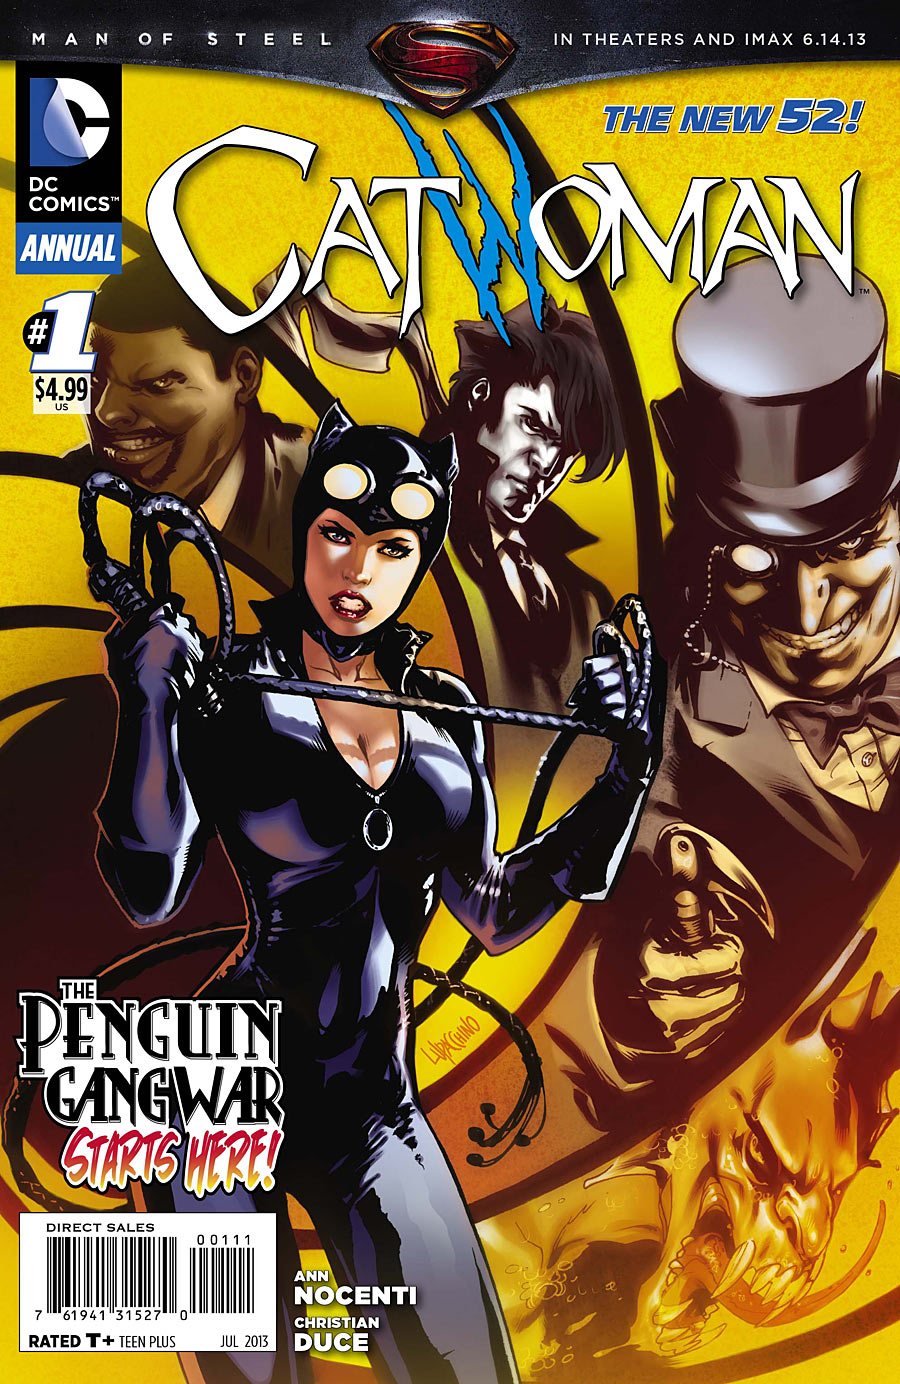 4 1 My Fall Uniform: Cover For Catwoman Annual #1 (2013